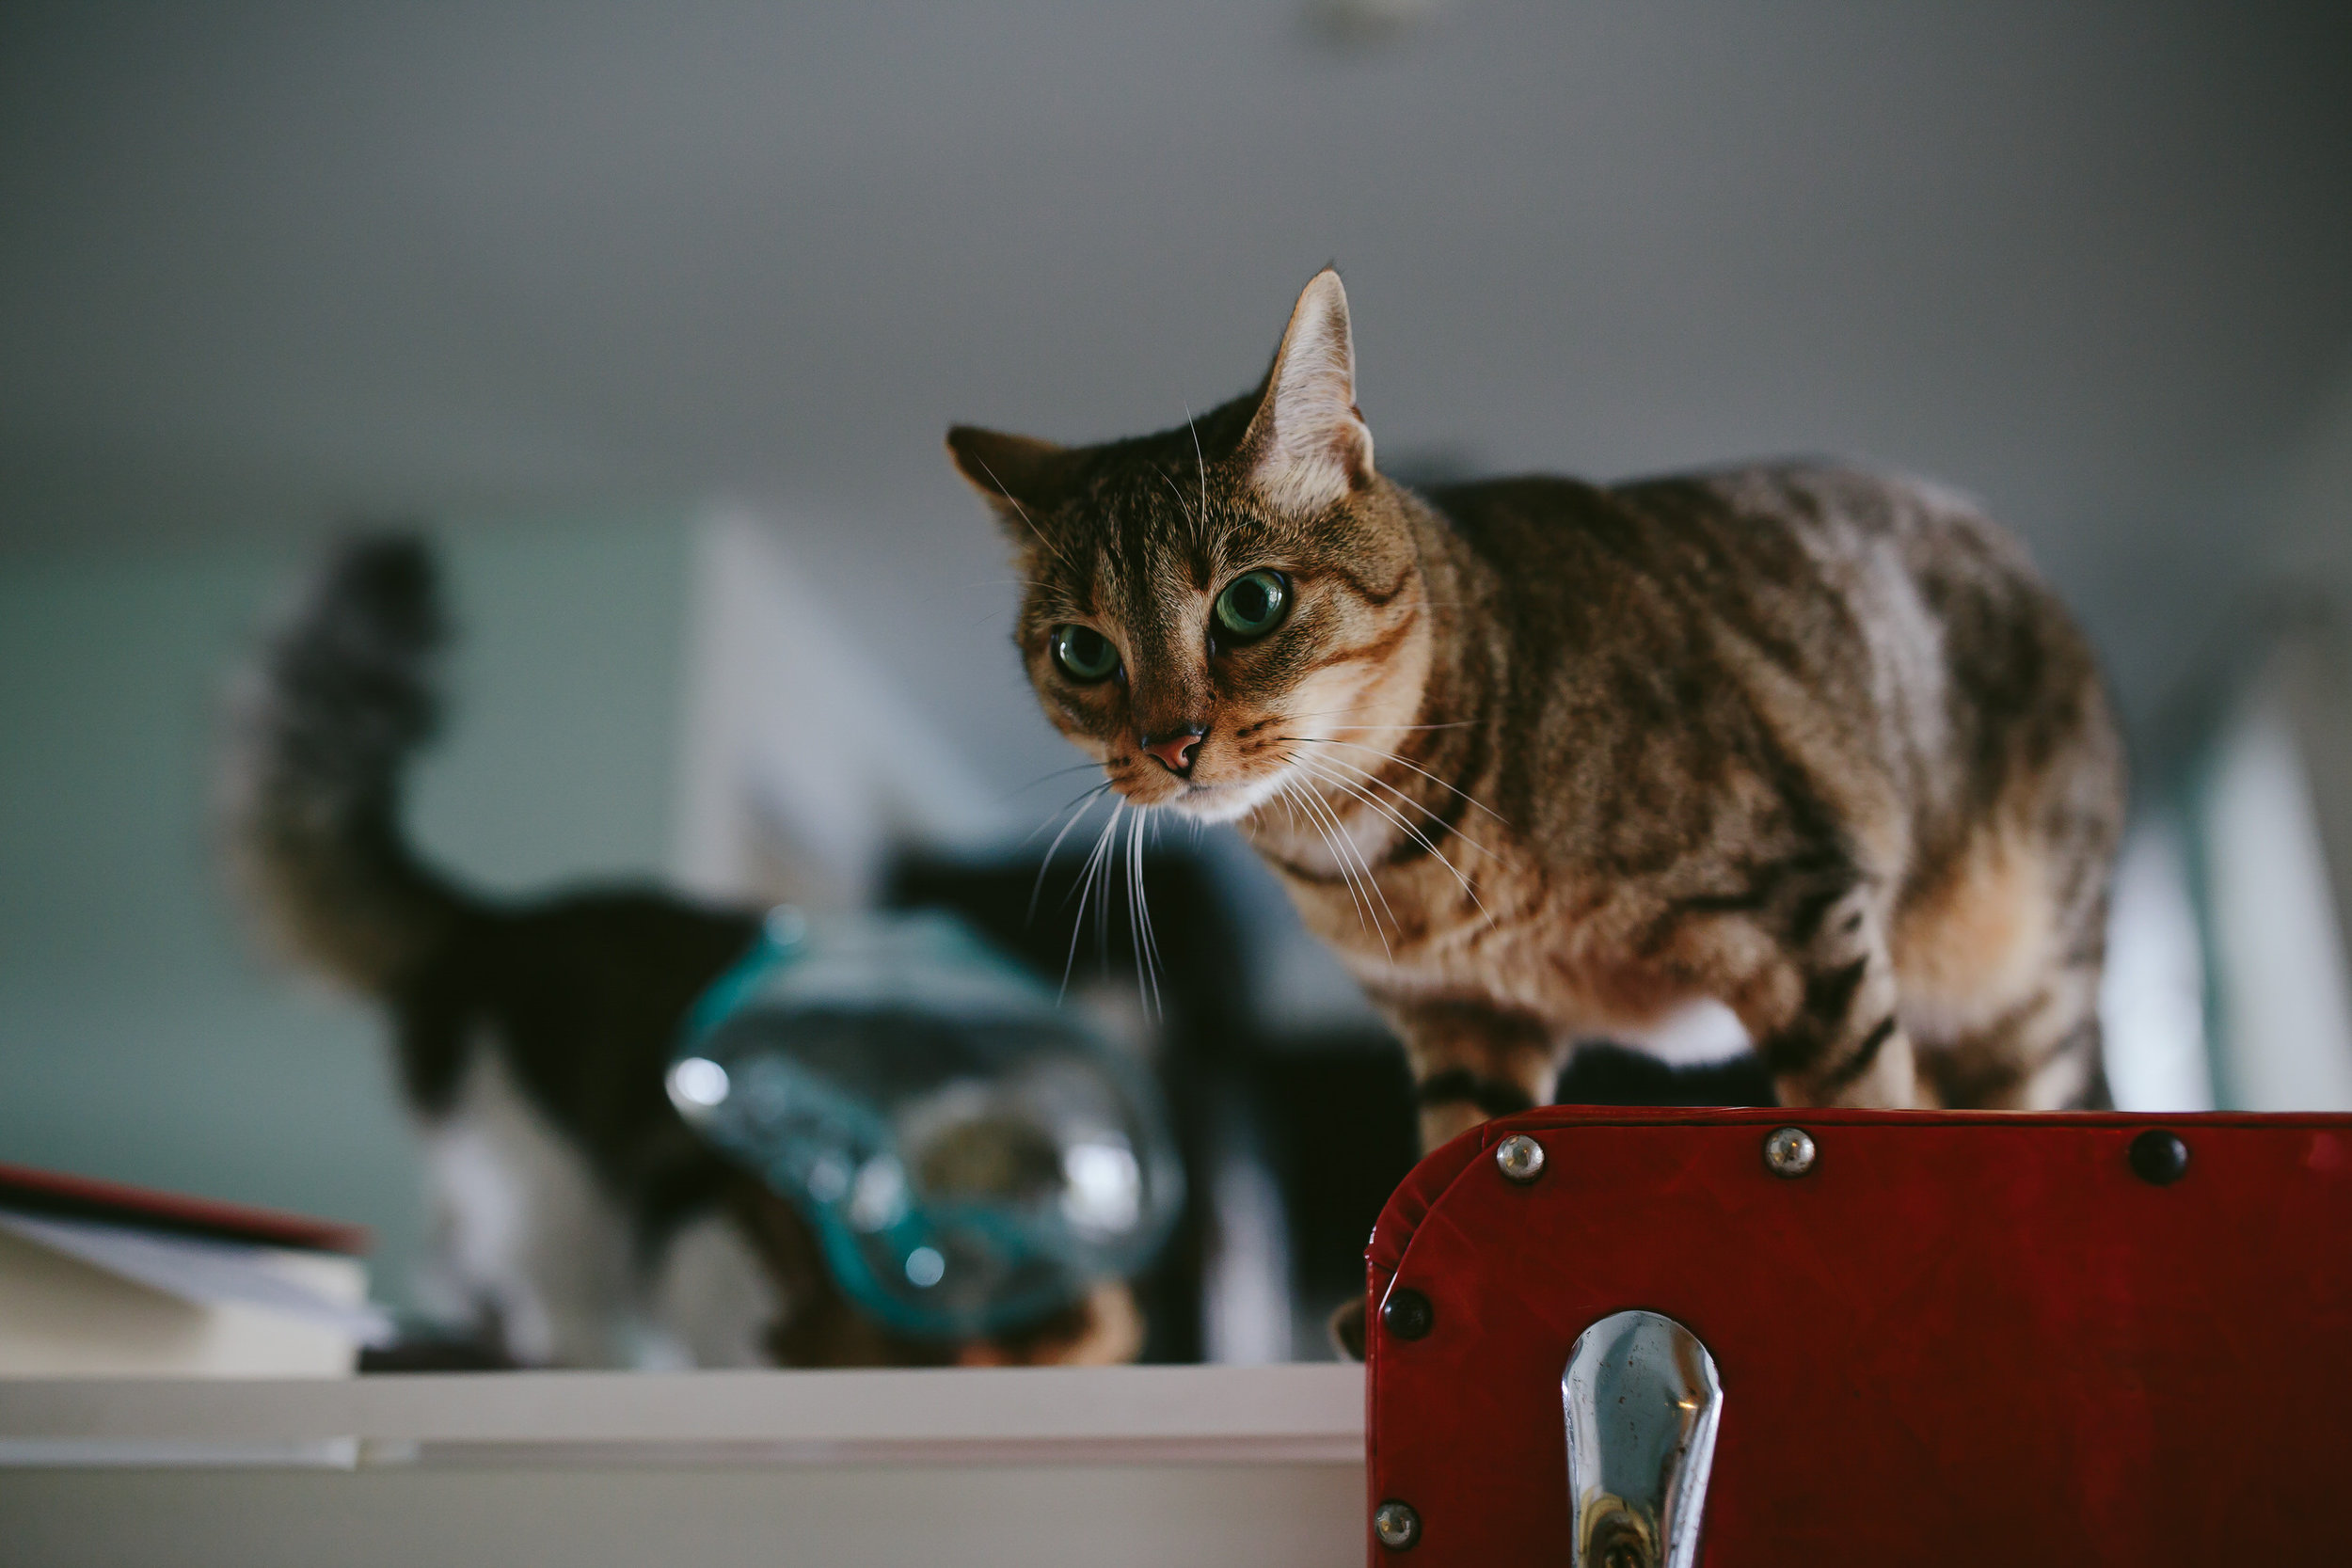 bride_and_groom_cats_in_home_session_wedding_fort_lauderdale_photographer_steph_lynn_photo-84.jpg